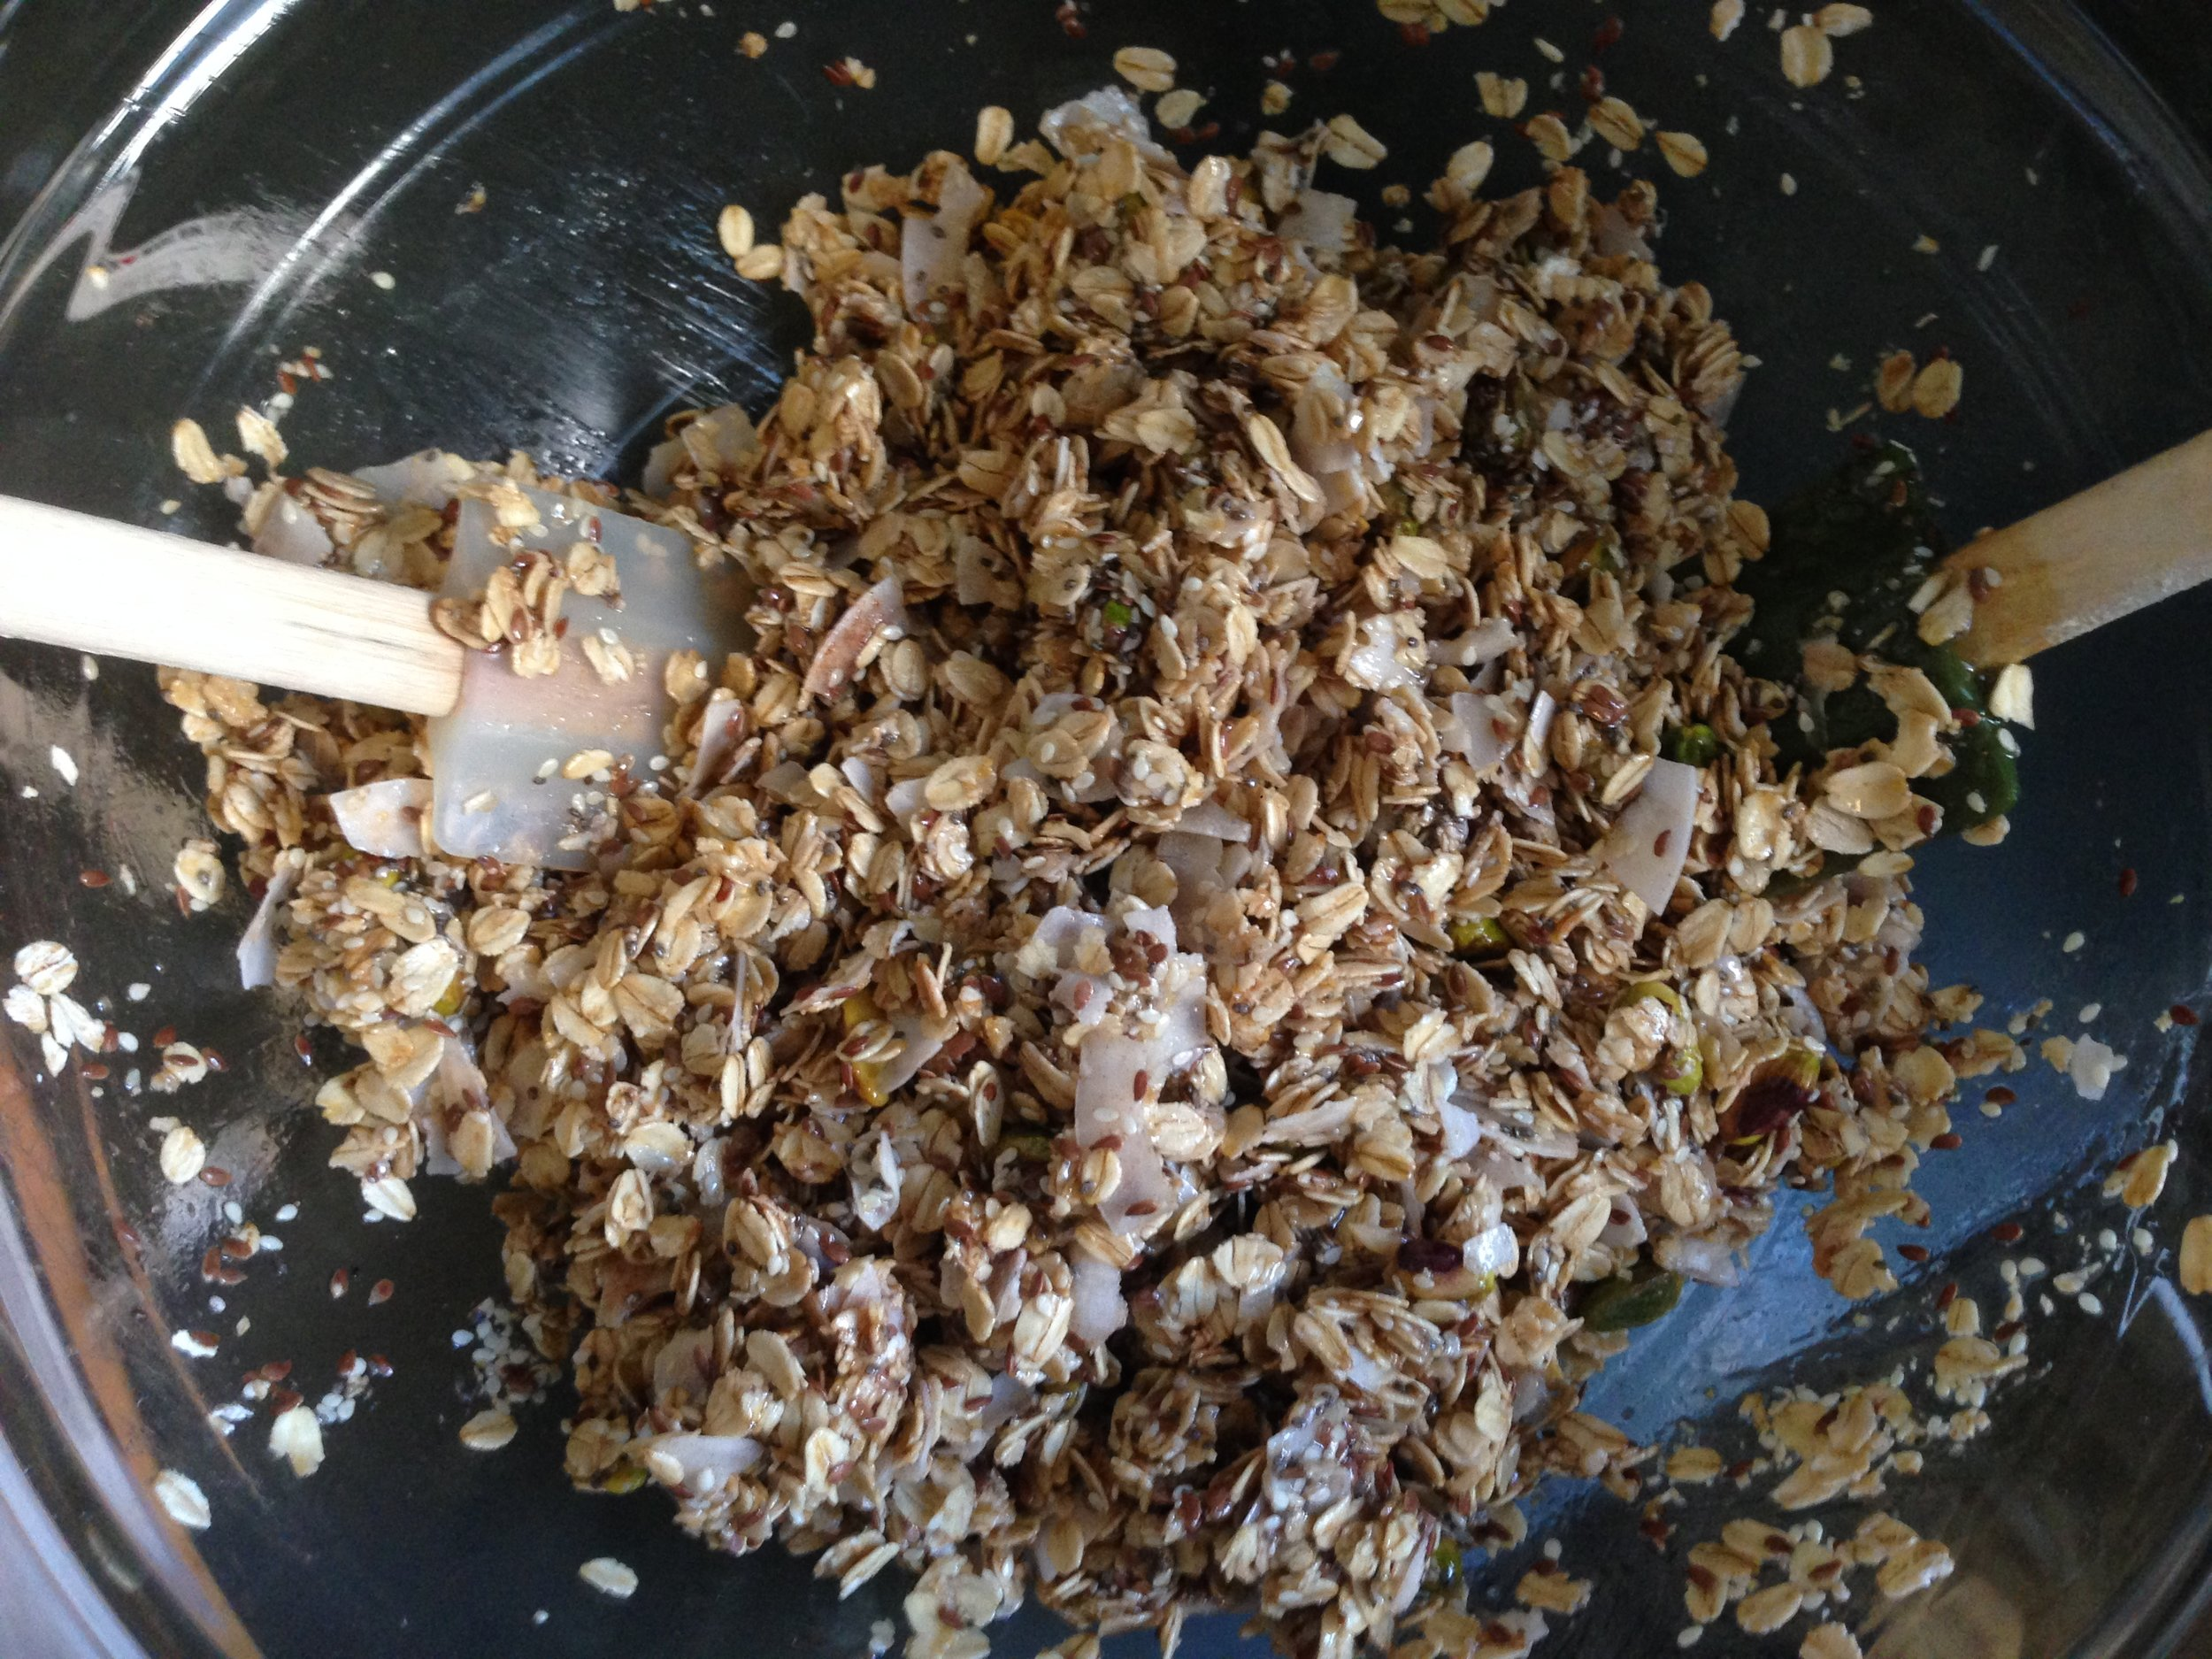 Tossing all the granola ingredients together.